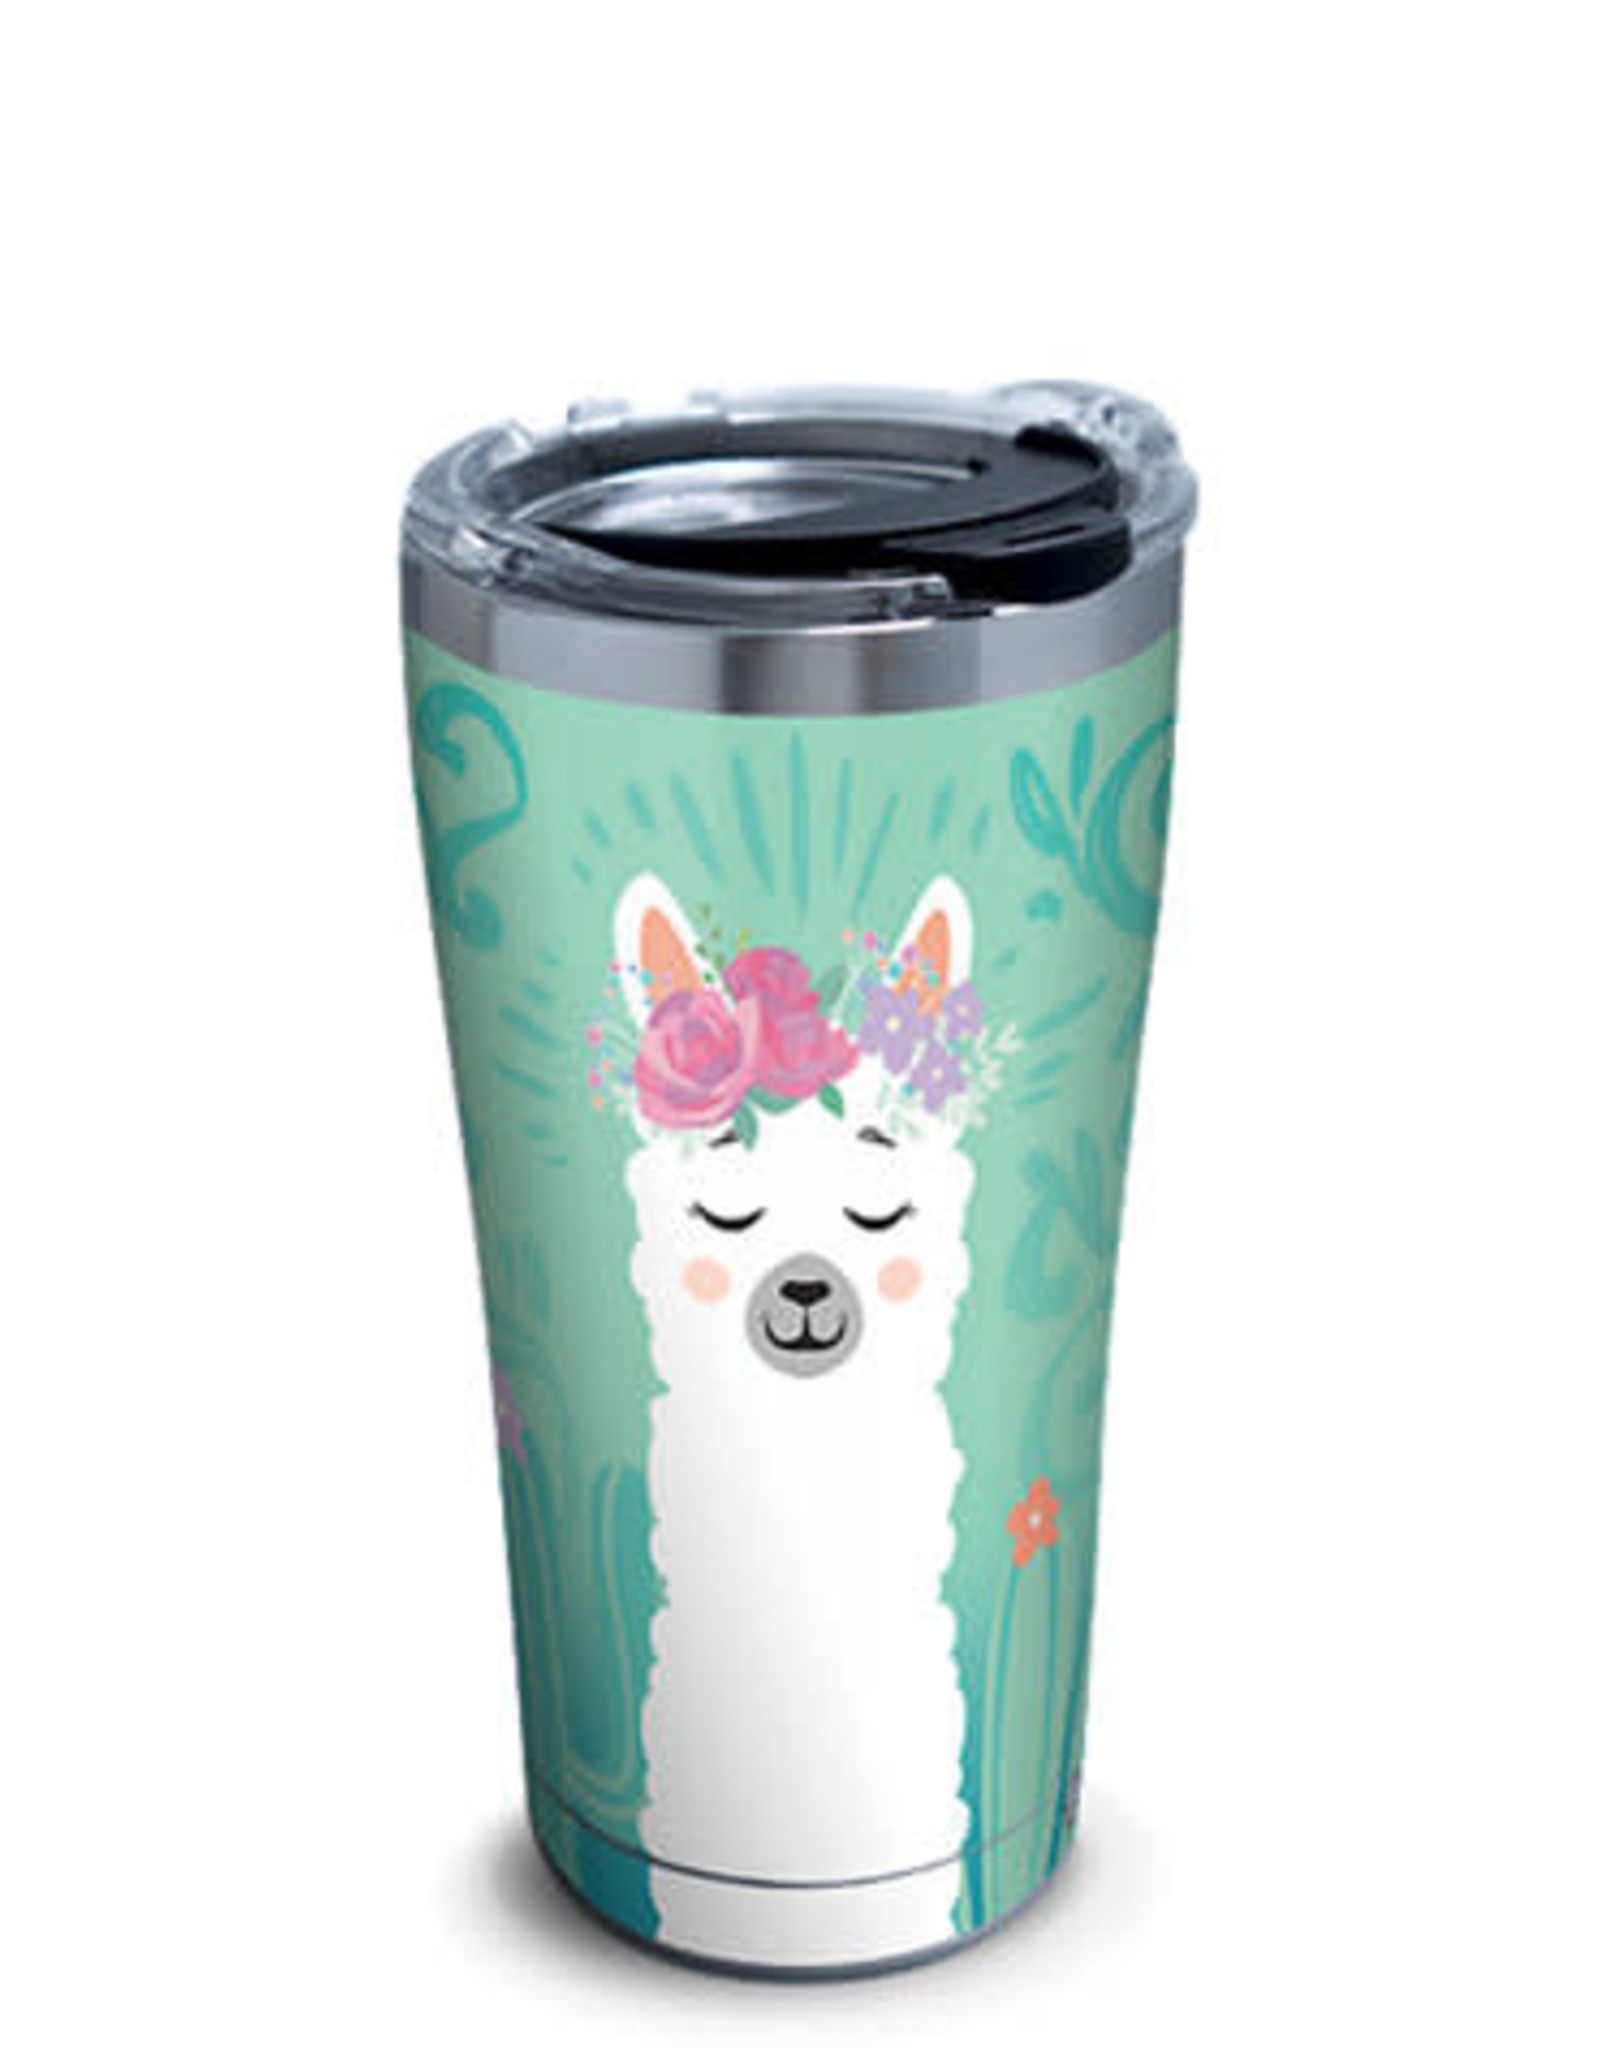 Tervis Tumbler 20oz/lid Llama Floral Stainless